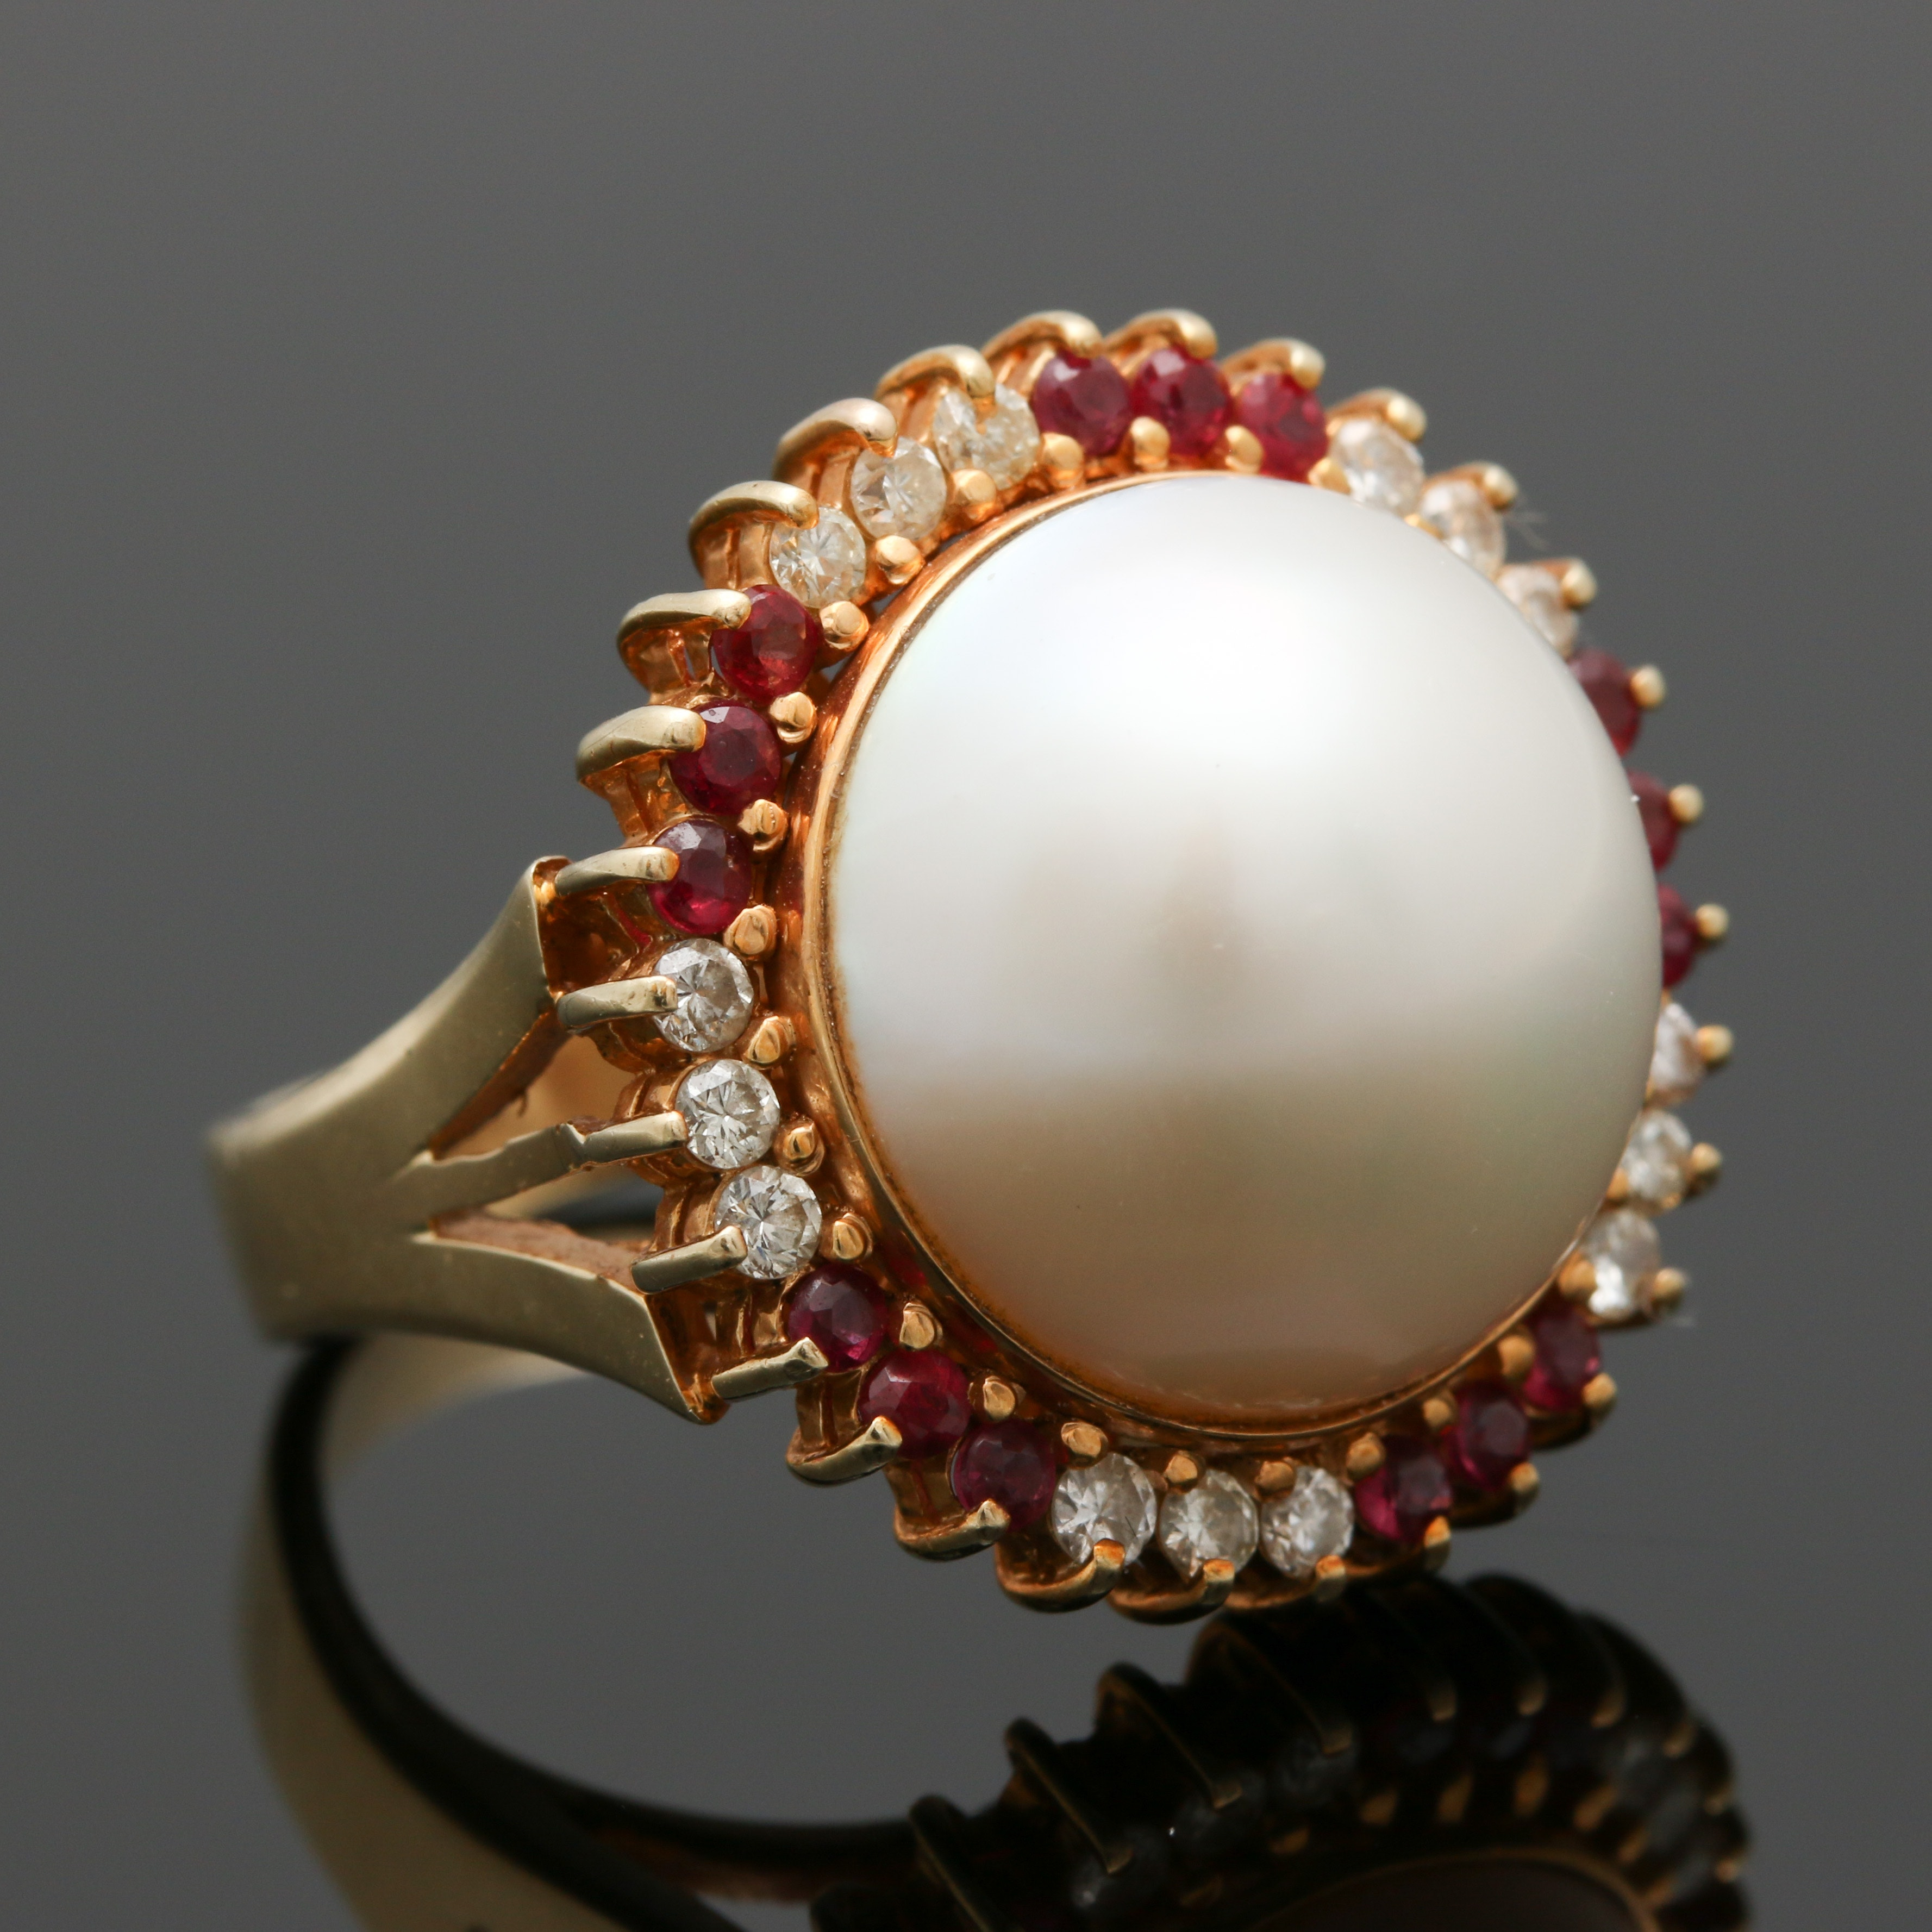 14K Yellow Gold Pearl and Gemstone Ring